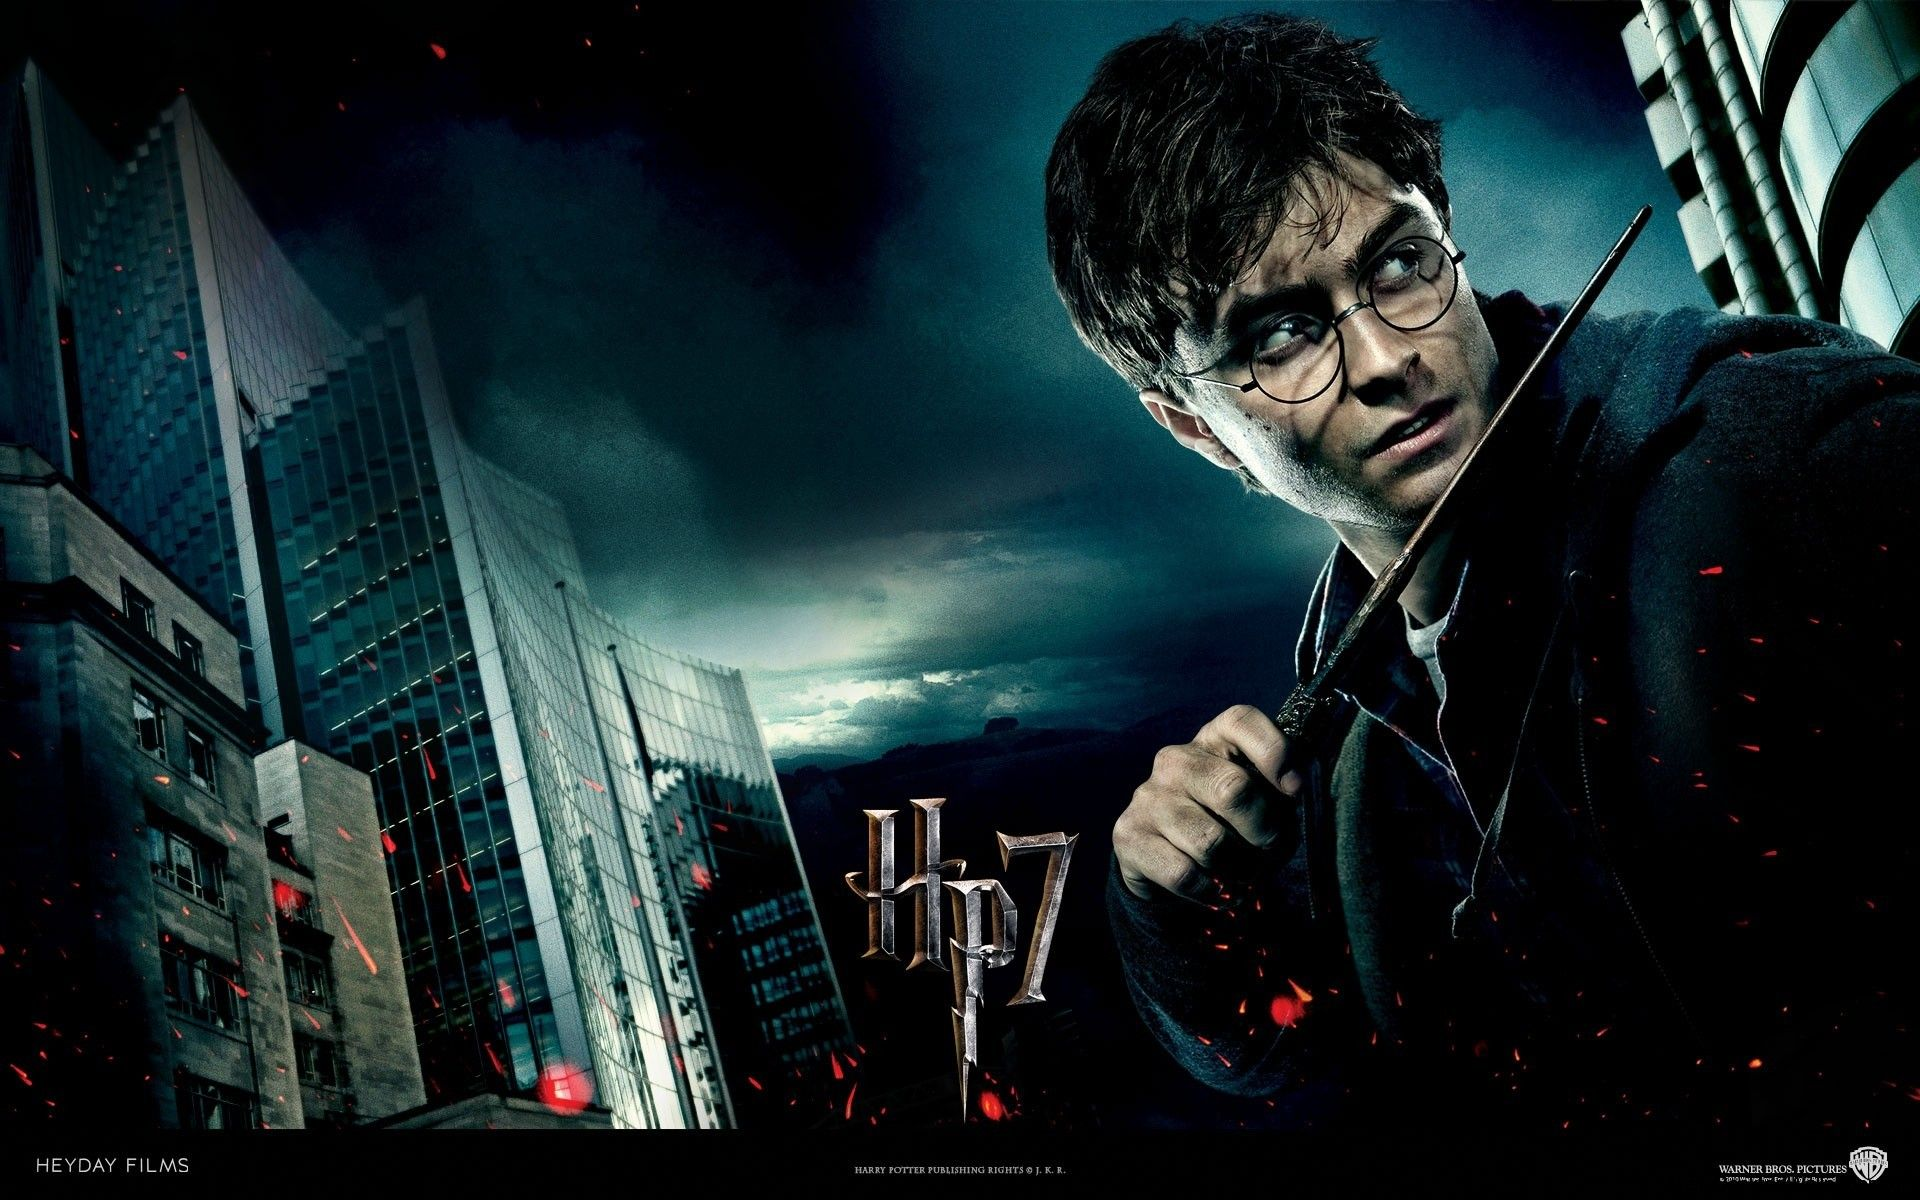 Harry Potter 7 Wallpapers   Top Harry Potter 7 Backgrounds 1920x1200